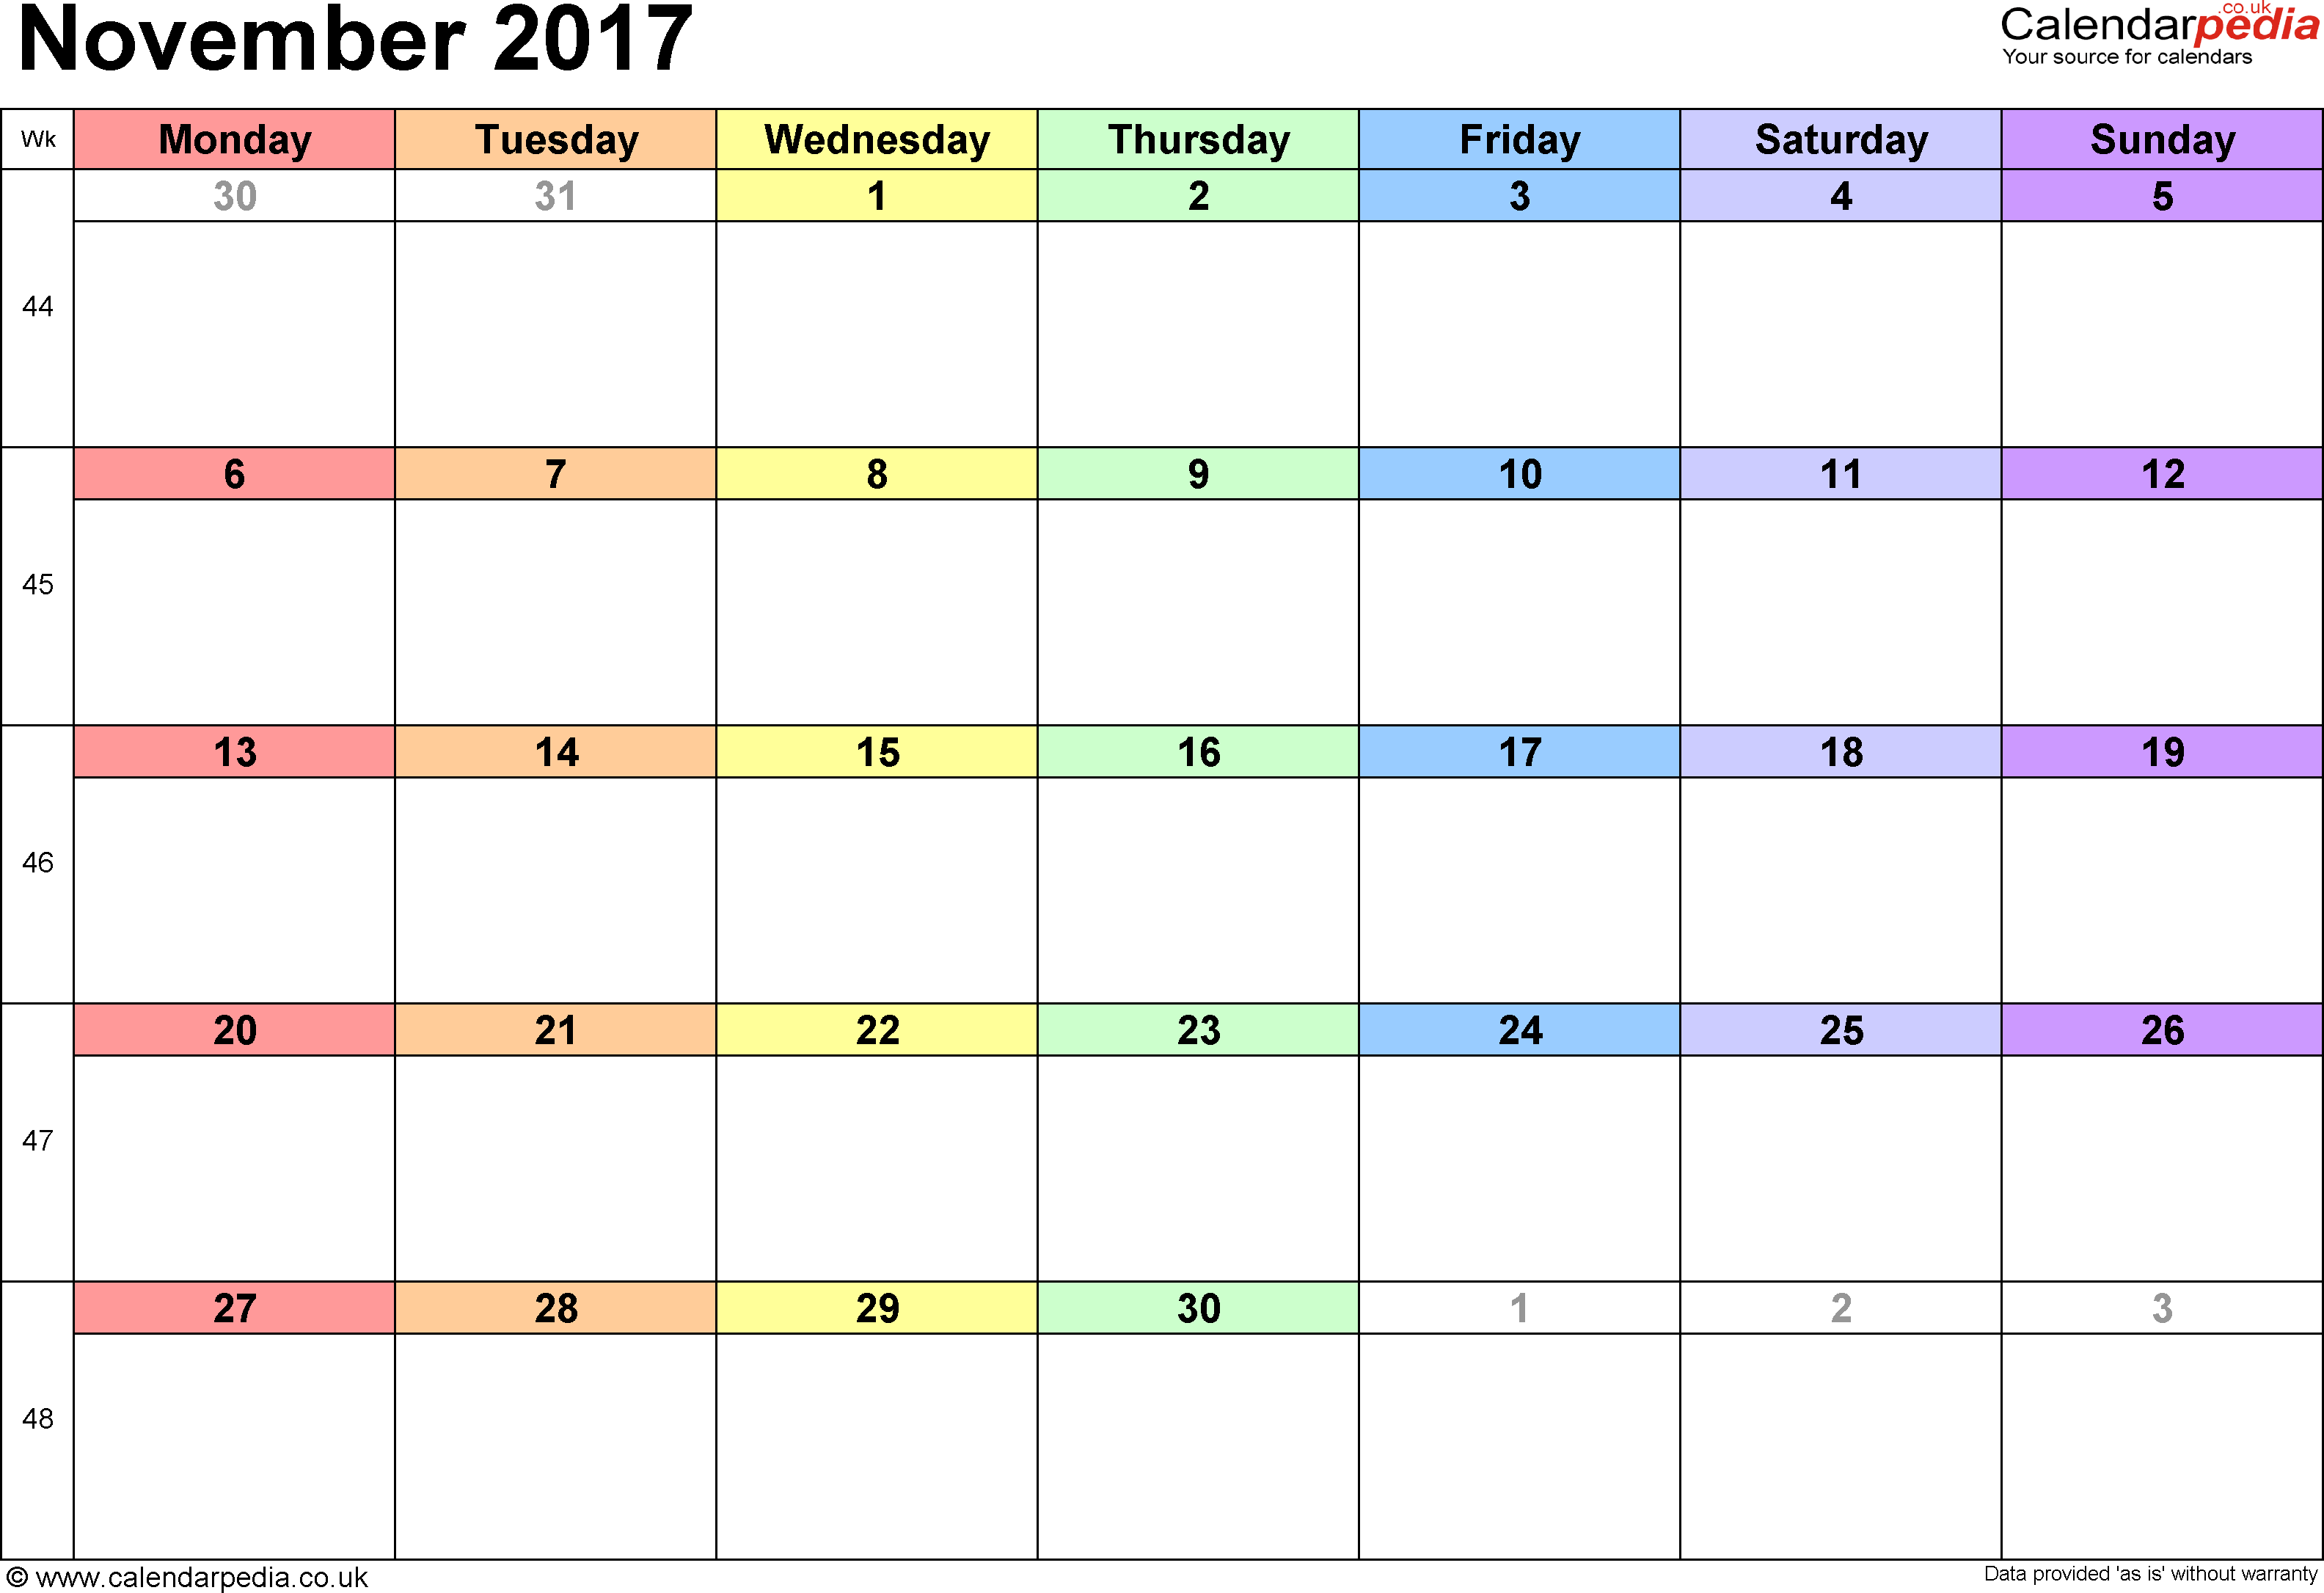 Calendar November 2017, landscape orientation, 1 page, with UK bank holidays and week numbers